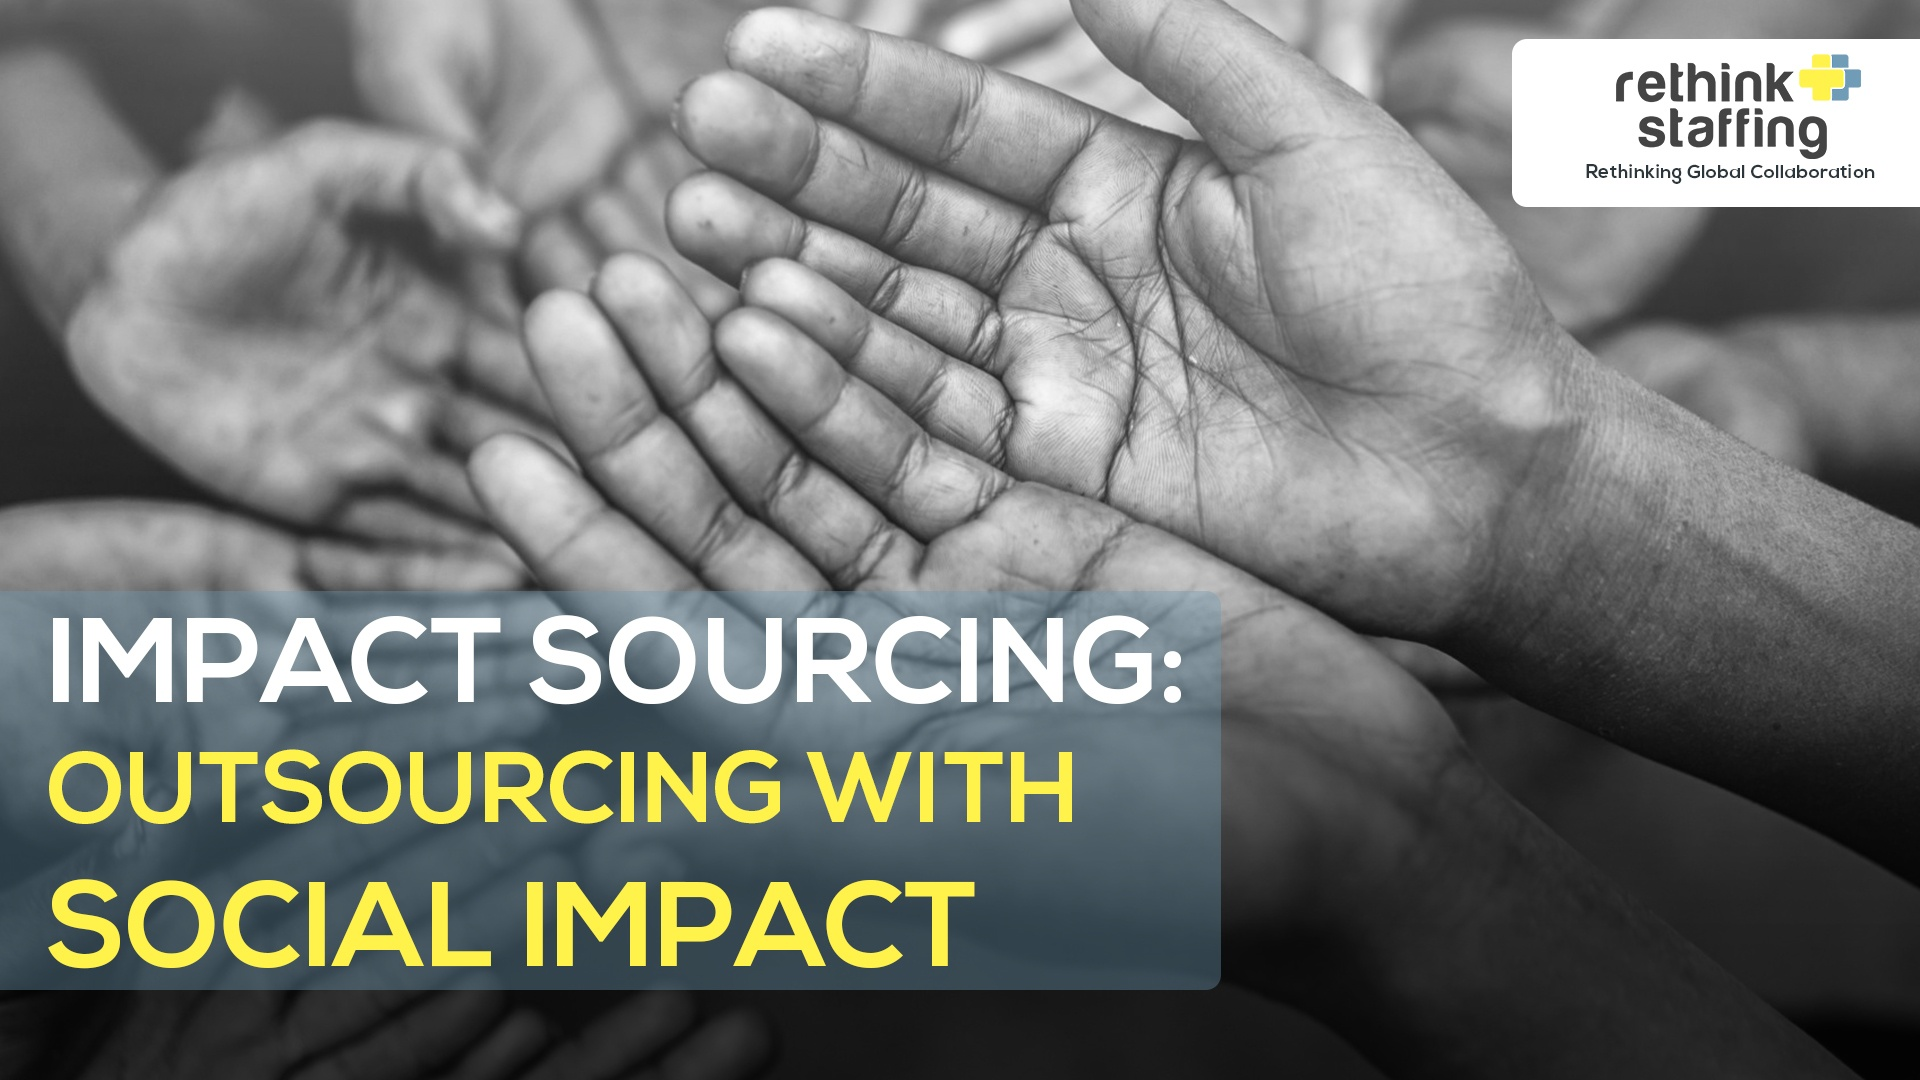 Impact Sourcing: Outsourcing with a Social Impact